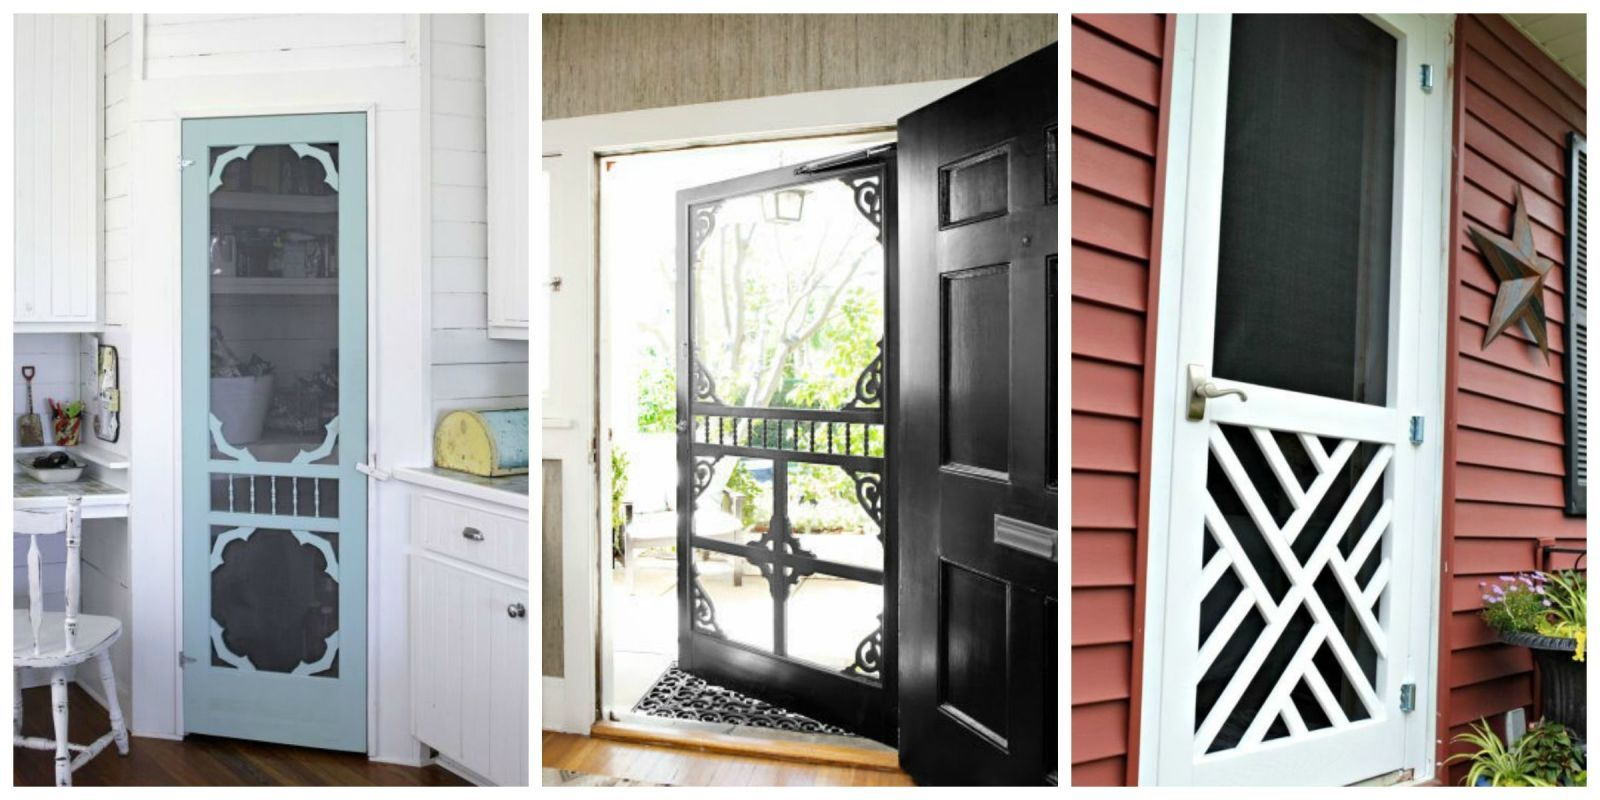 13 Country Chic Ways To Refresh A Screen Door House Exterior